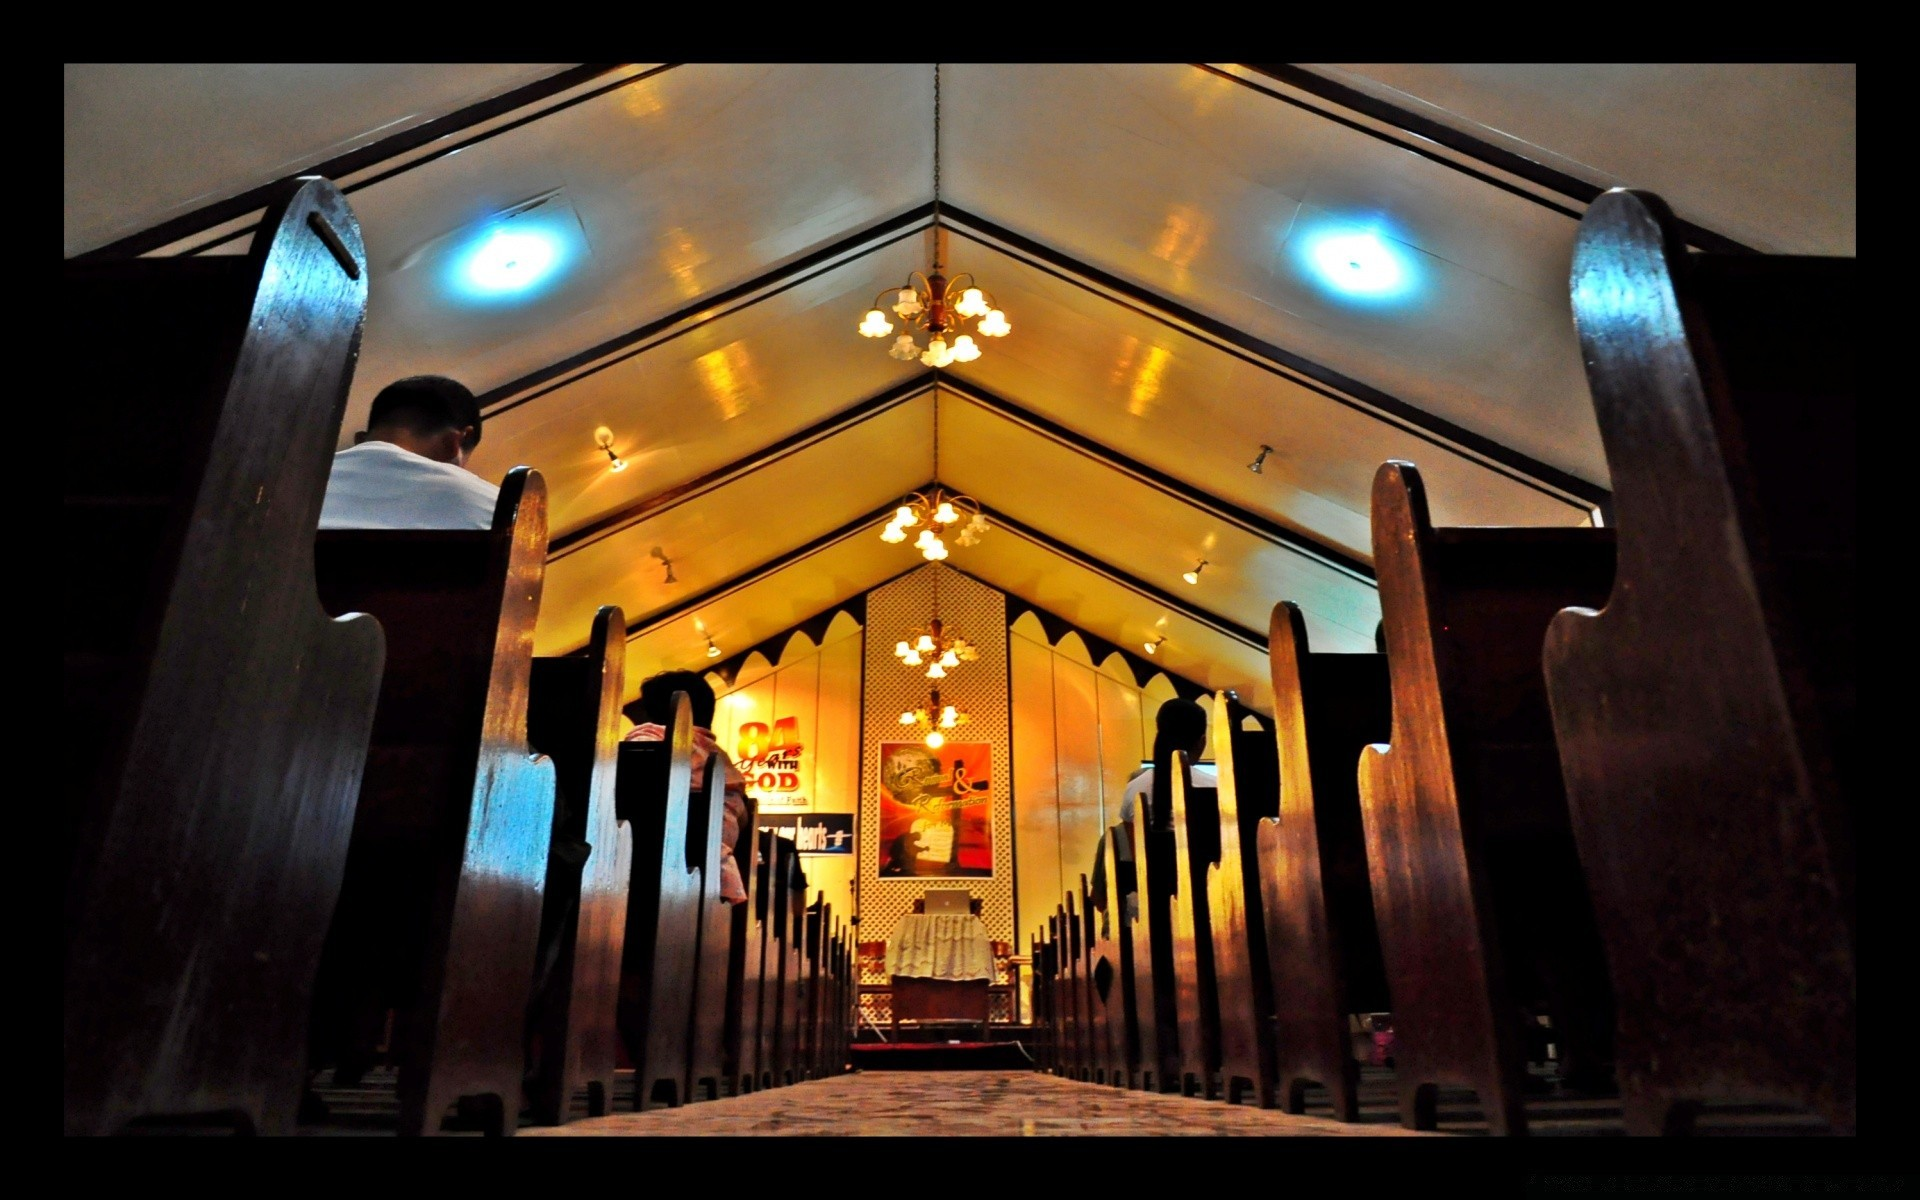 asia church architecture light indoors travel city building religion